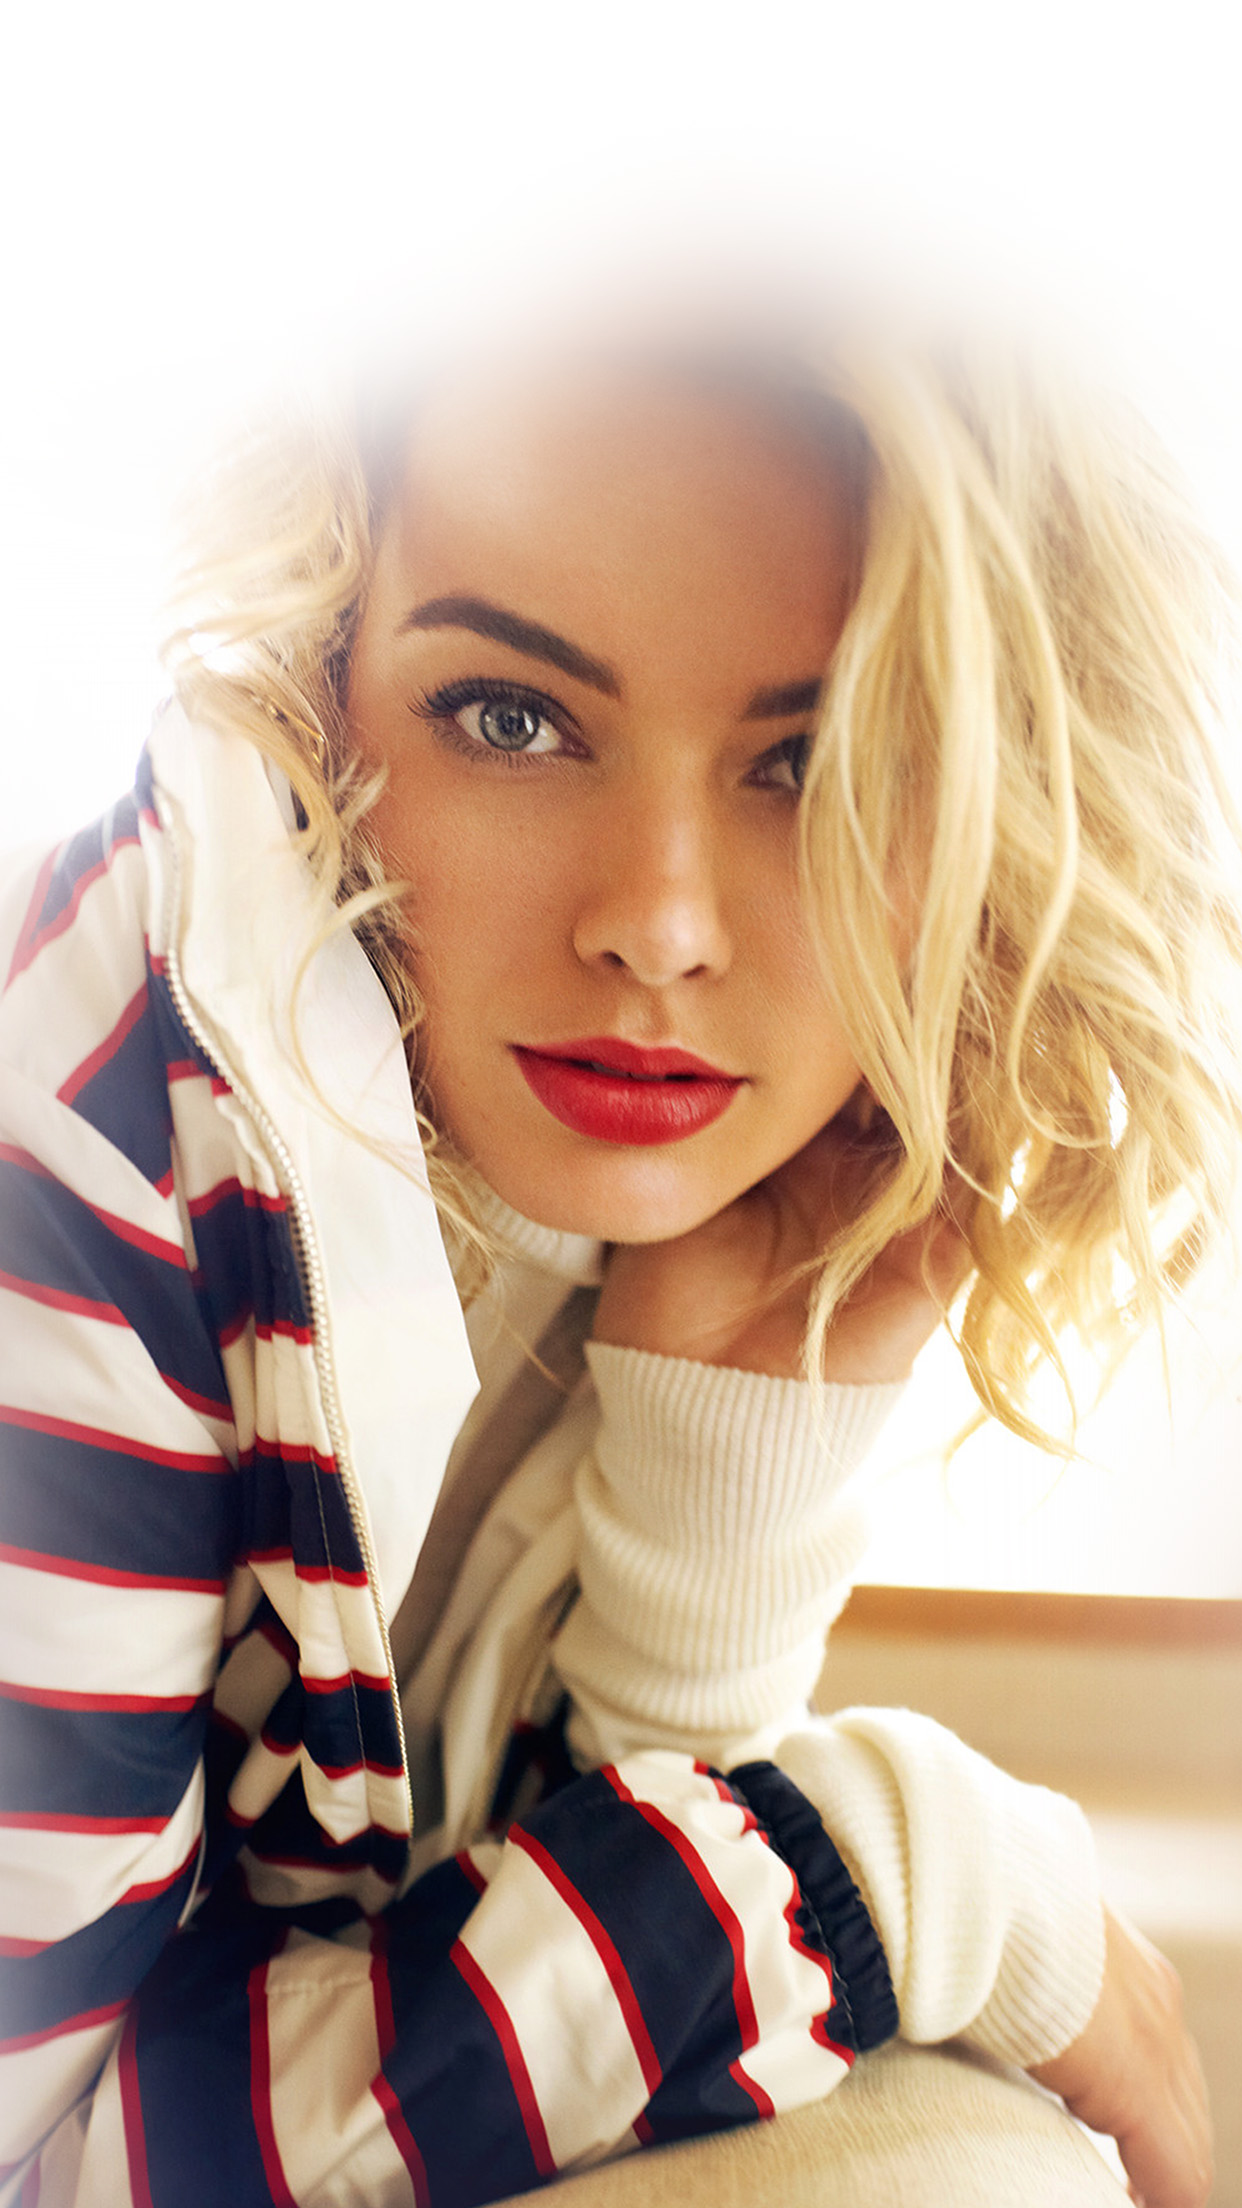 Margot Robbie Smile Celebrity Beauty Android wallpaper